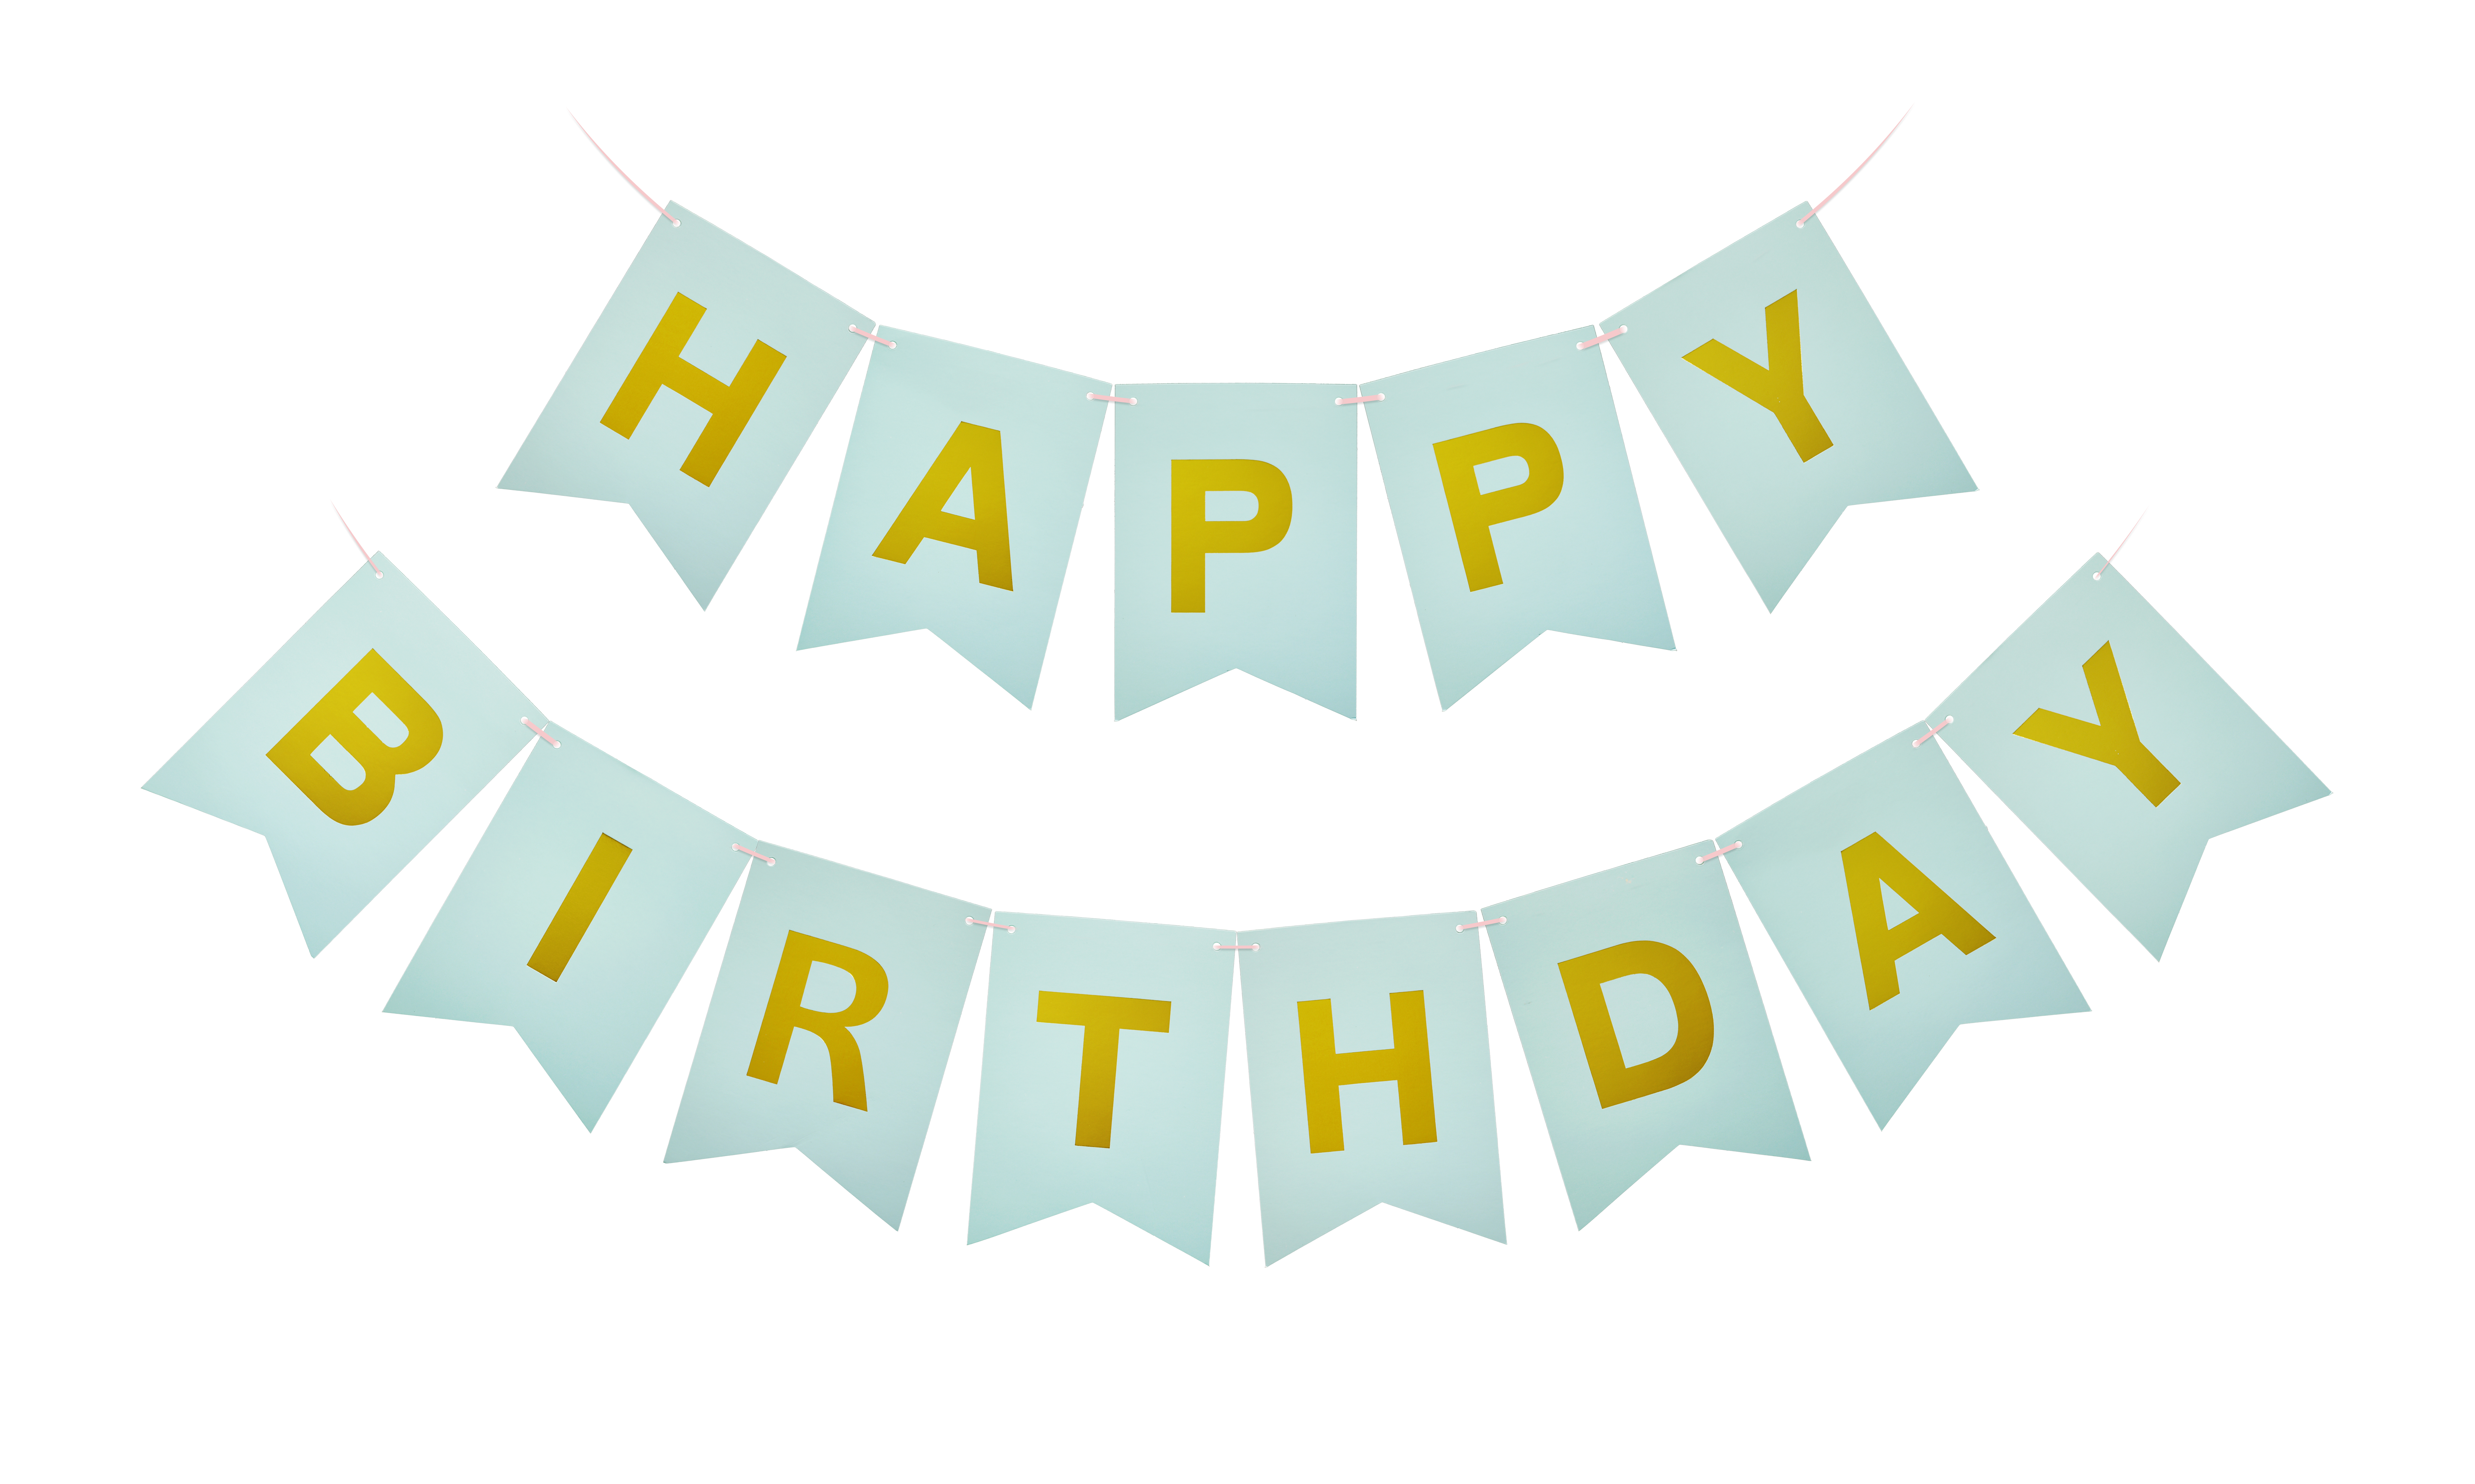 Paper Happy Birthday Banner Decor Swallowtail Bunting Flag Garland For Party Events Indoor Out Birthday Flags Animal Party Supplies Happy Birthday Banners